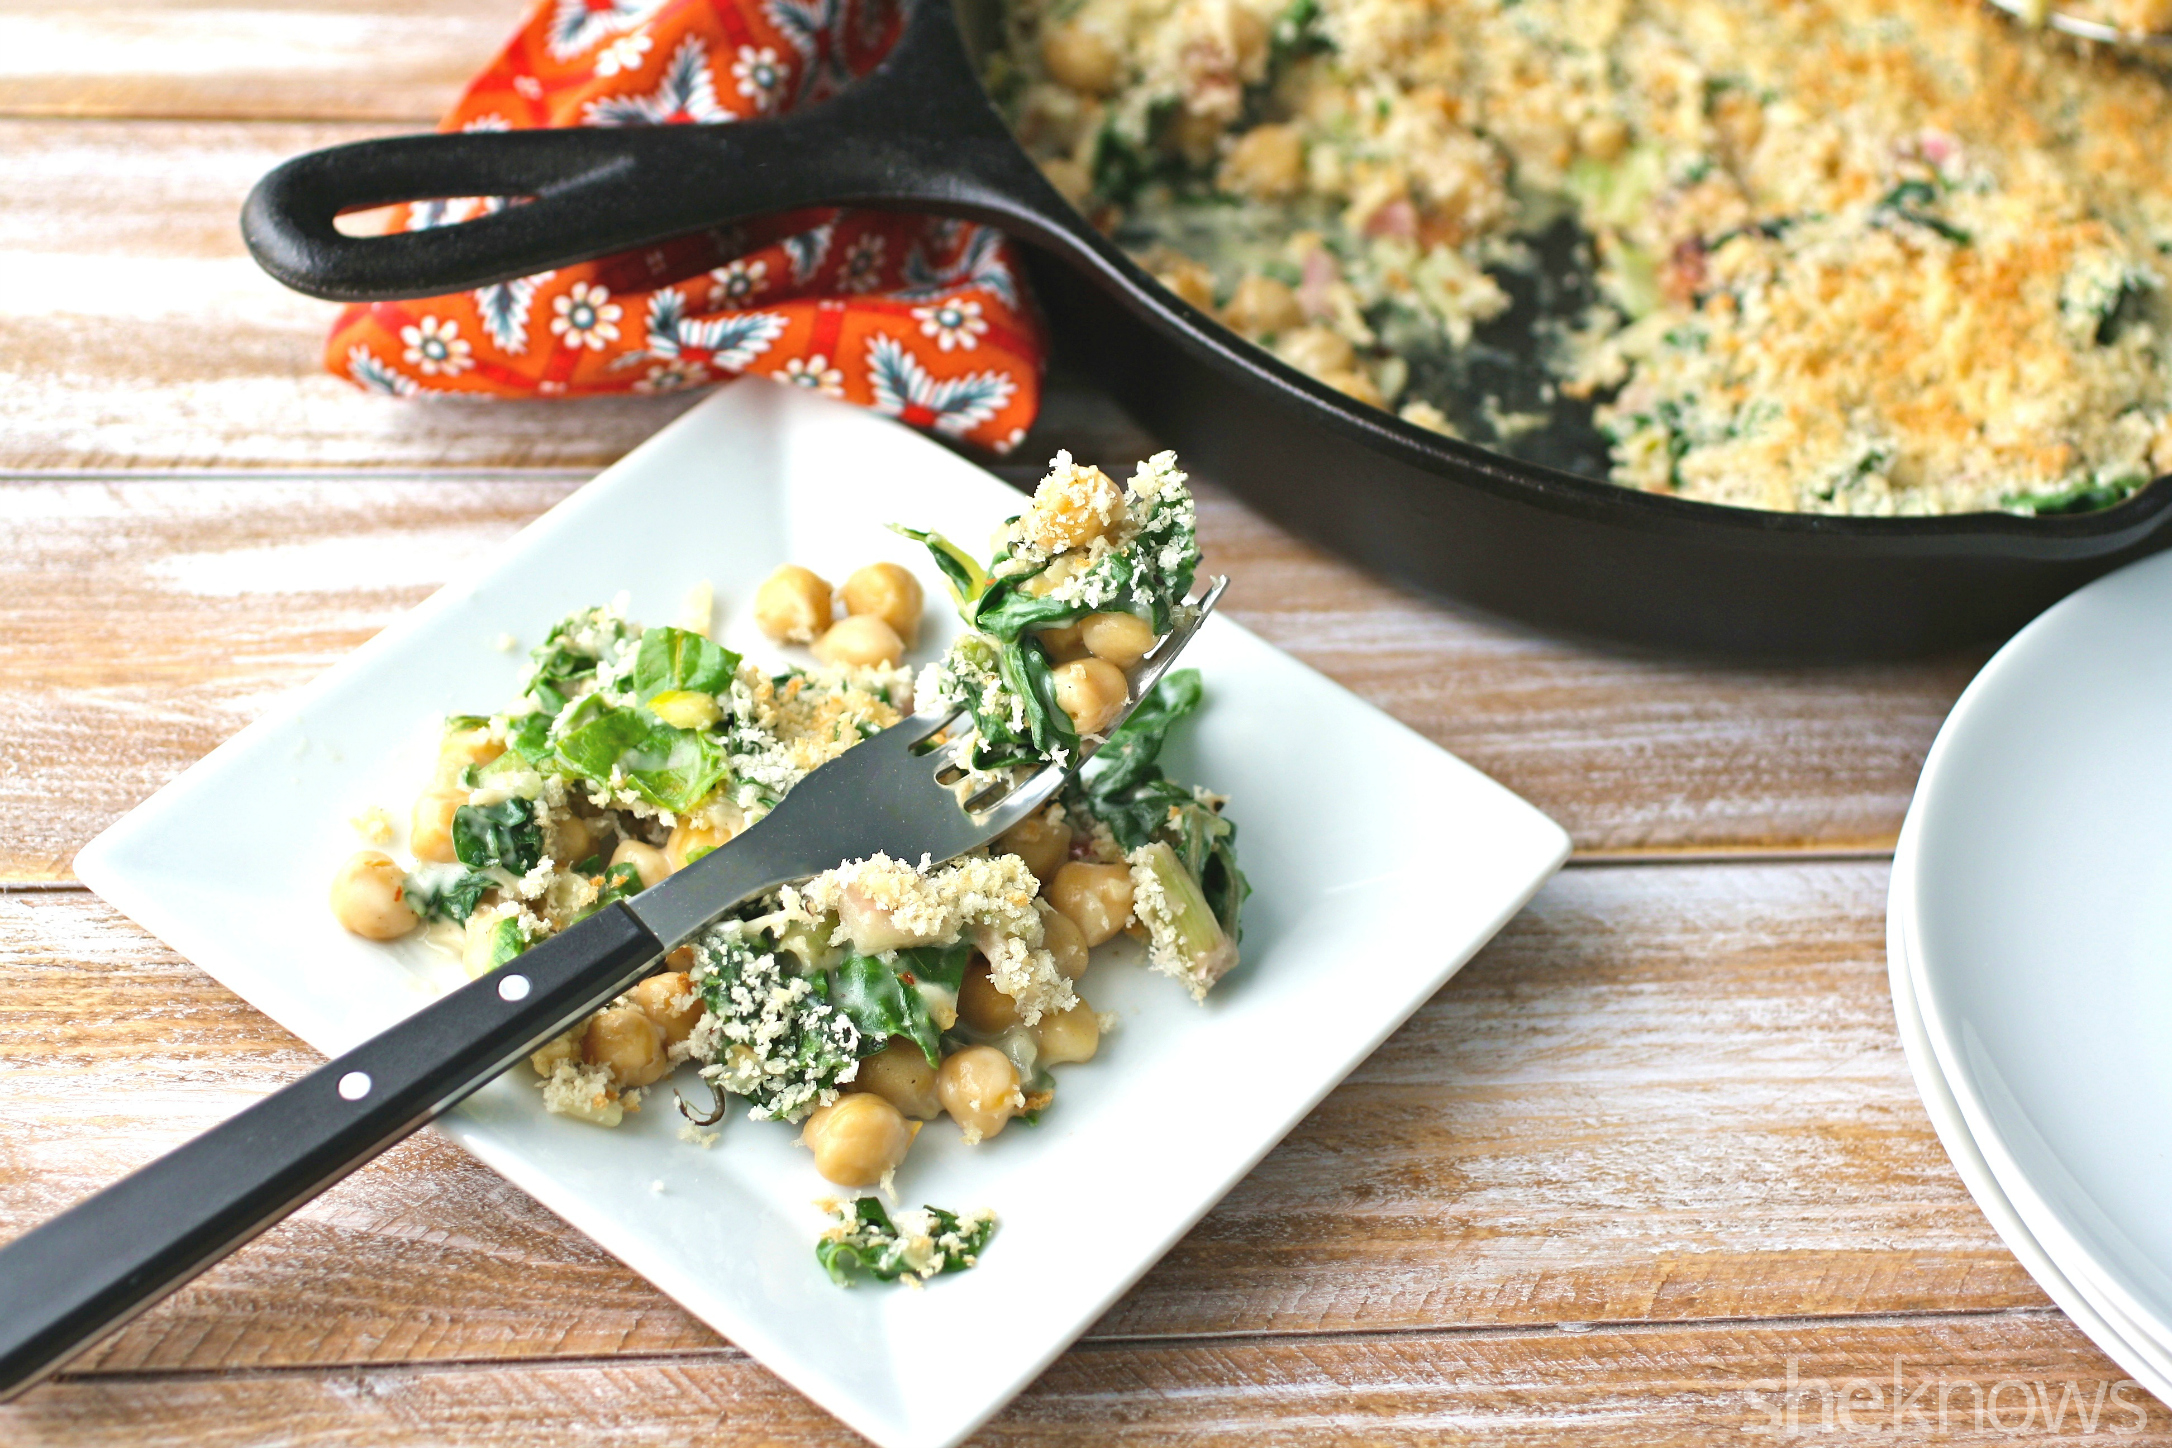 Textures combine in this Meatless Monday recipe for creamy skillet Swiss chard with chickpeas and crunchy breadcrumbs